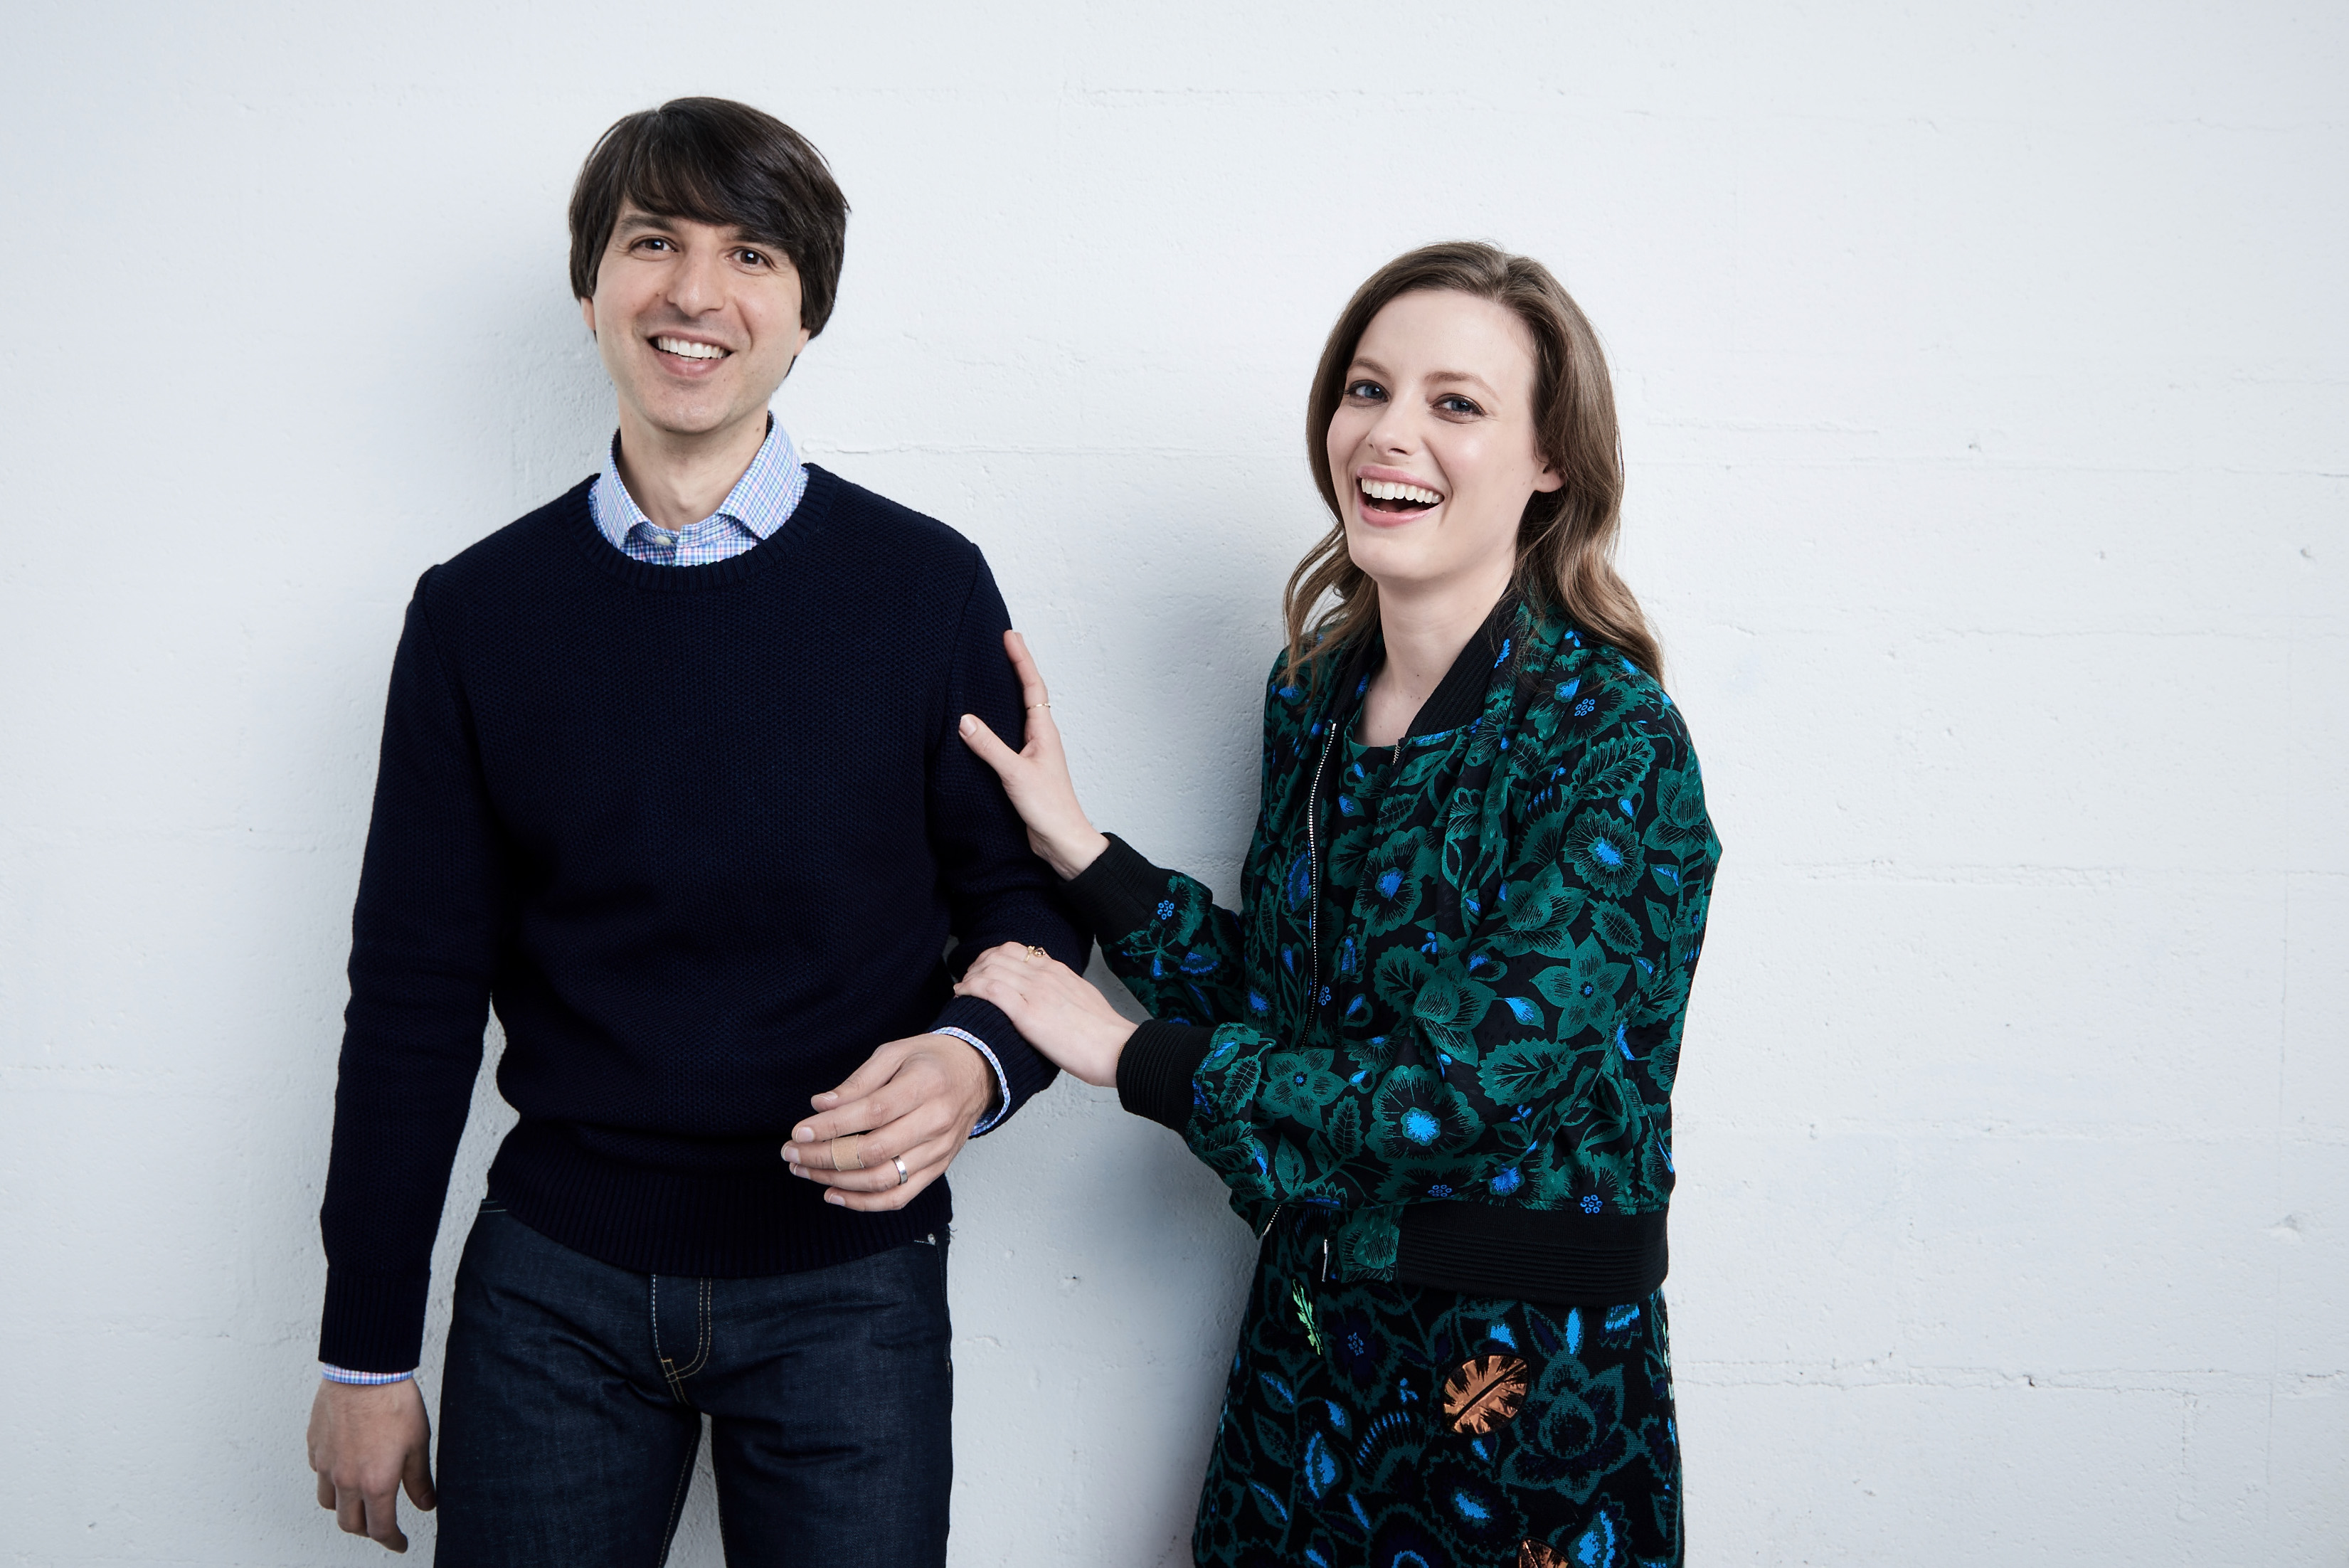 Demetri Martin and Gillian Jacobs from  Dean  pose at the Tribeca Film Festival Getty Images Studio on April 16, 2016 in New York City.